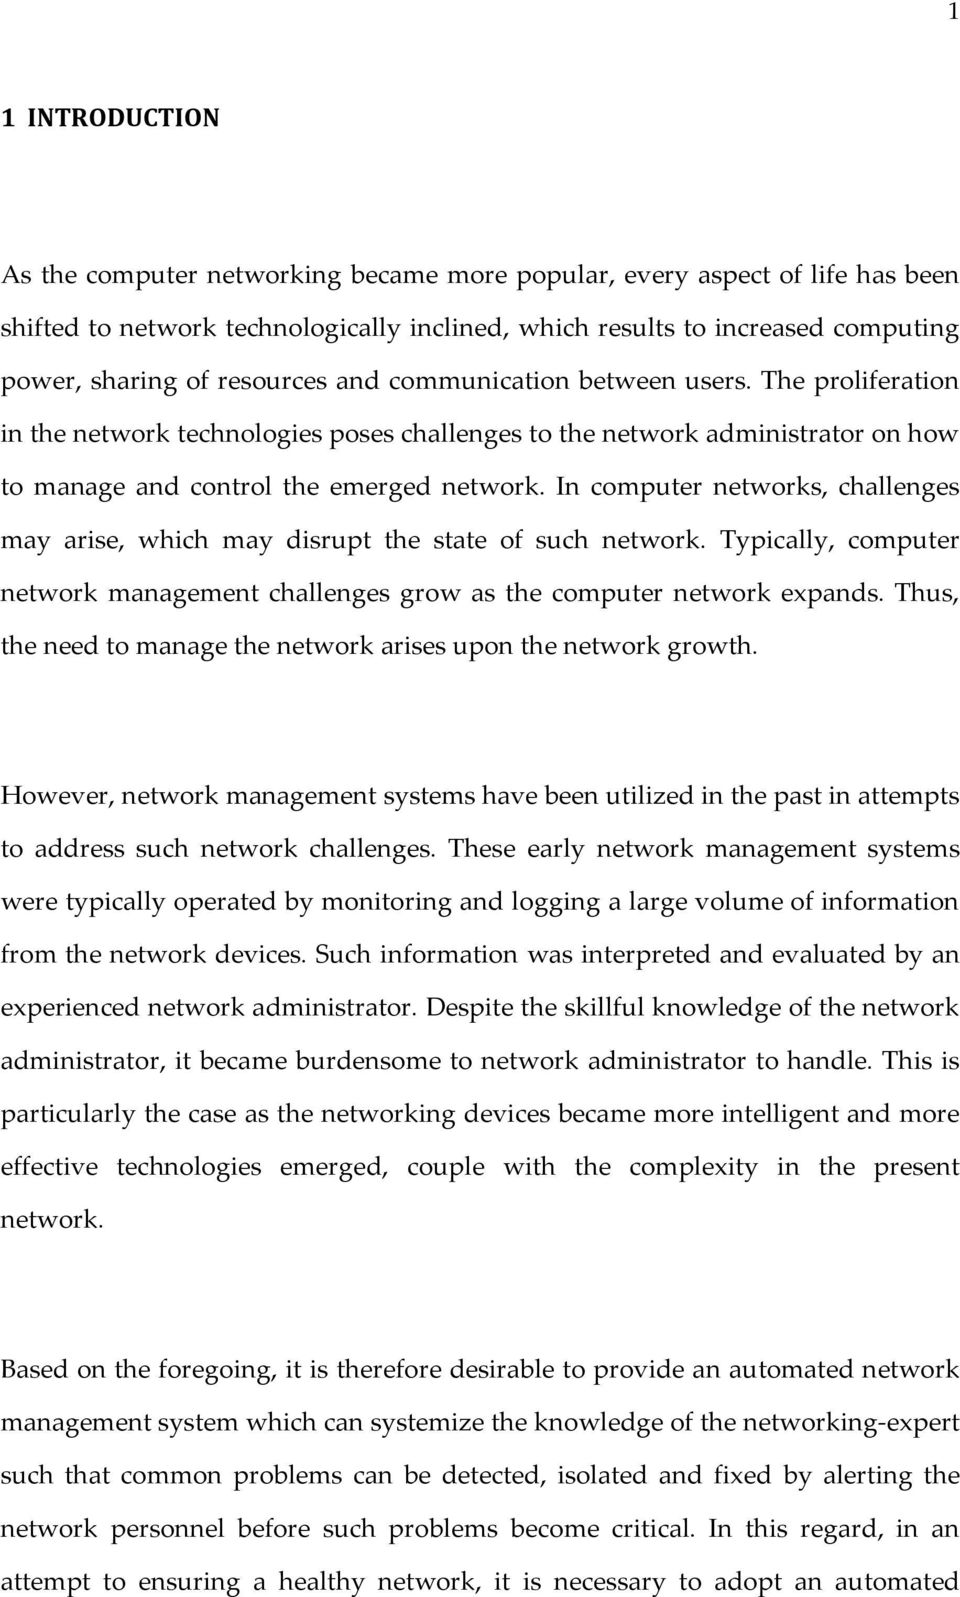 In computer networks, challenges may arise, which may disrupt the state of such network. Typically, computer network management challenges grow as the computer network expands.